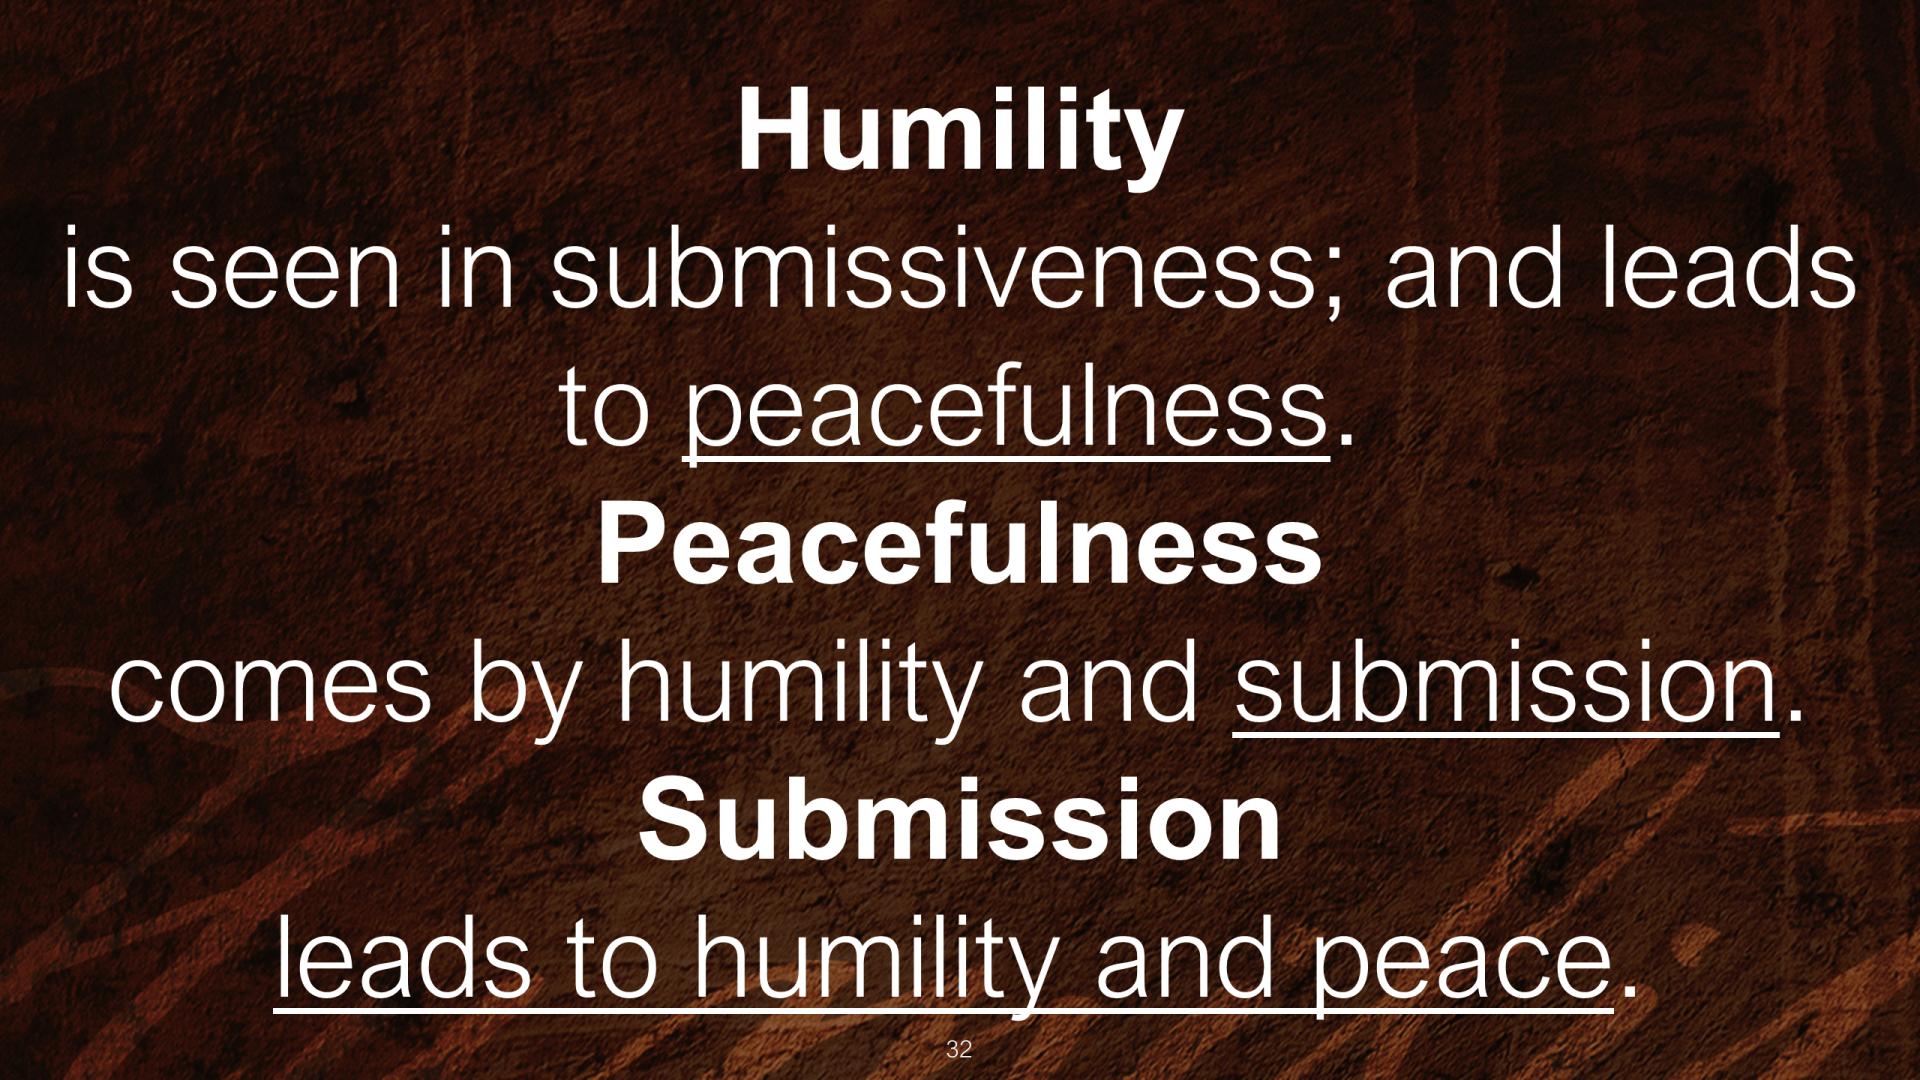 PBH-03 - Be Clothed with Humility (32)